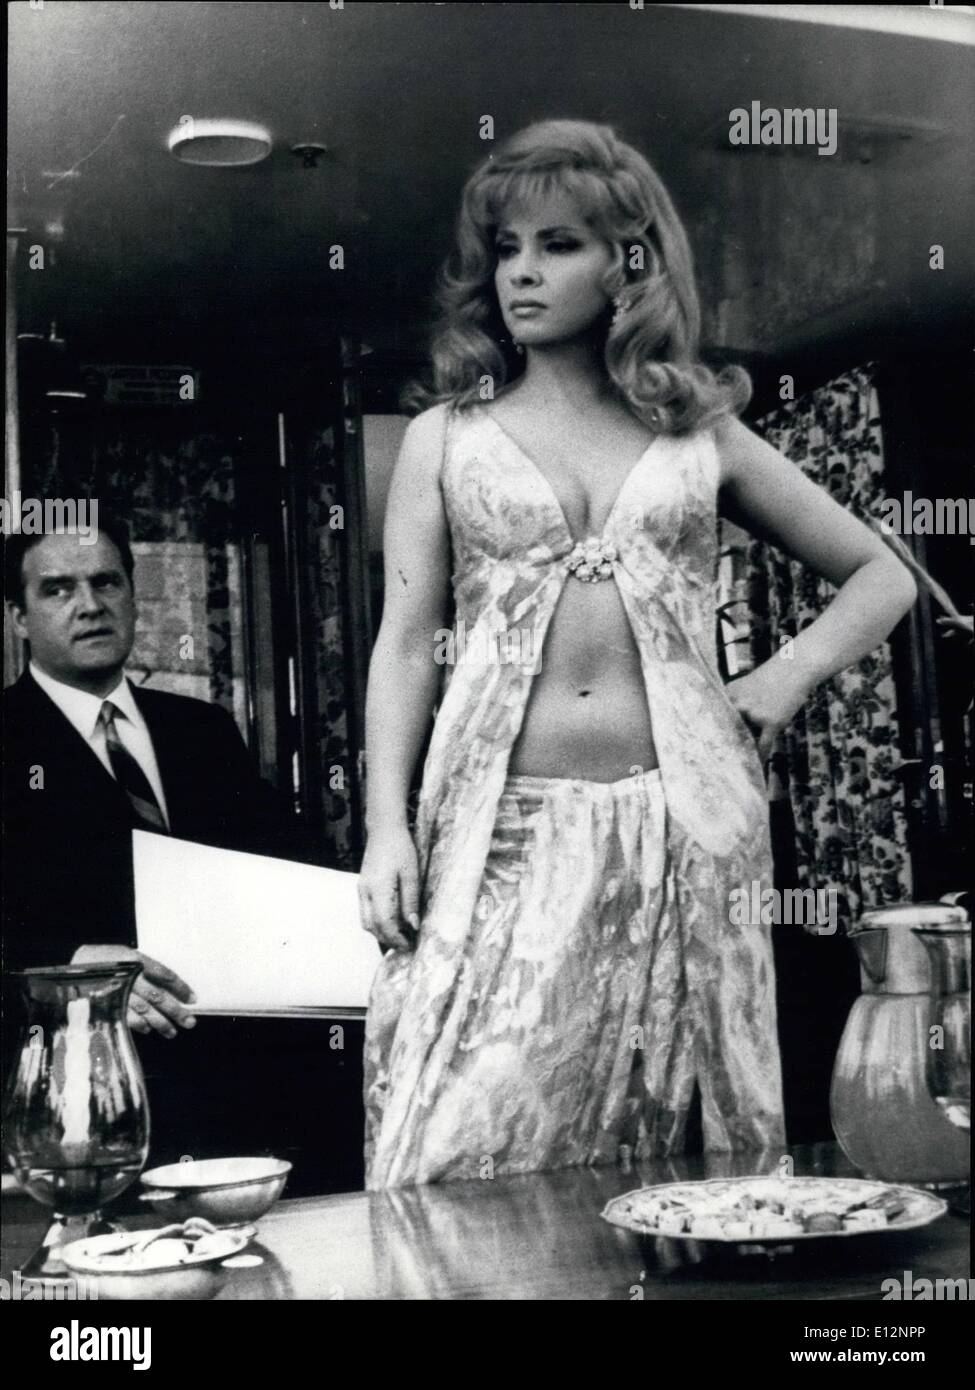 Feb. 24, 2012 - Rome IO Lugilo 1968 : Seducent actress Gina Lollobrigida playing the role of a millionaire business woman in the film '' Stuntman'' that is turned now in Rome. OPS Gina Lollobrigida wearing a fine dress in a scene of the film. - Stock Image